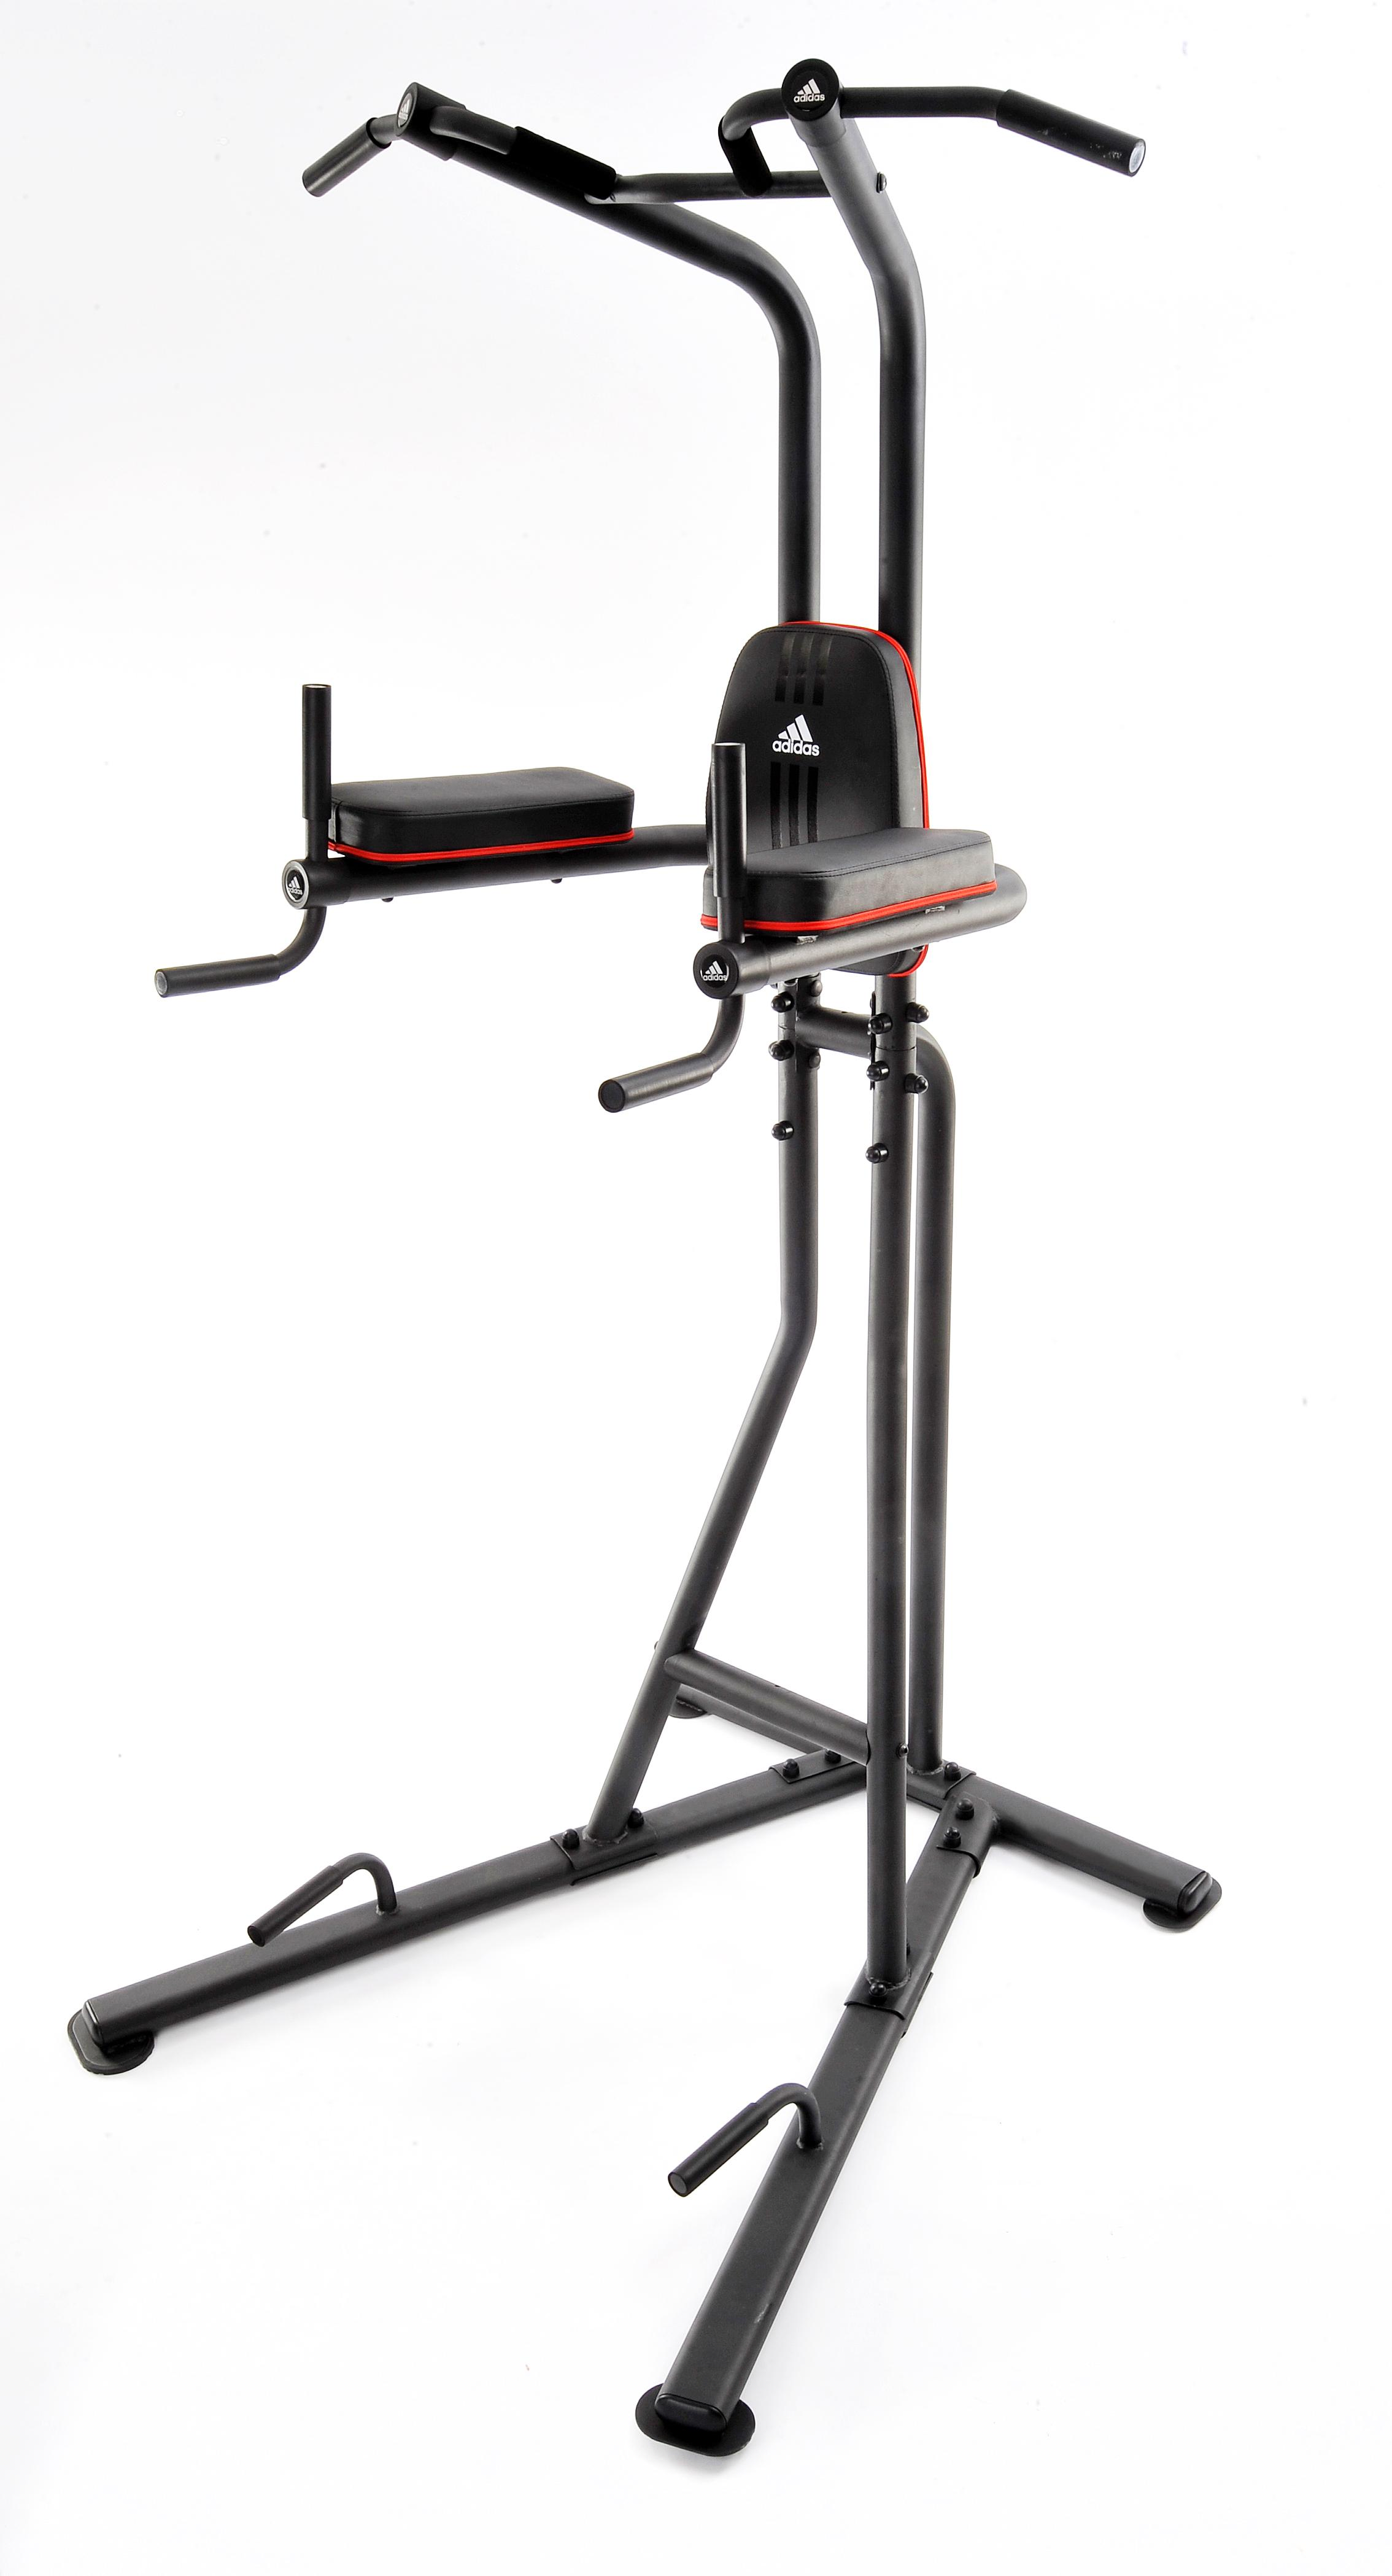 Amazon.com : adidas Power Tower : Exercise Power Stands : Sports